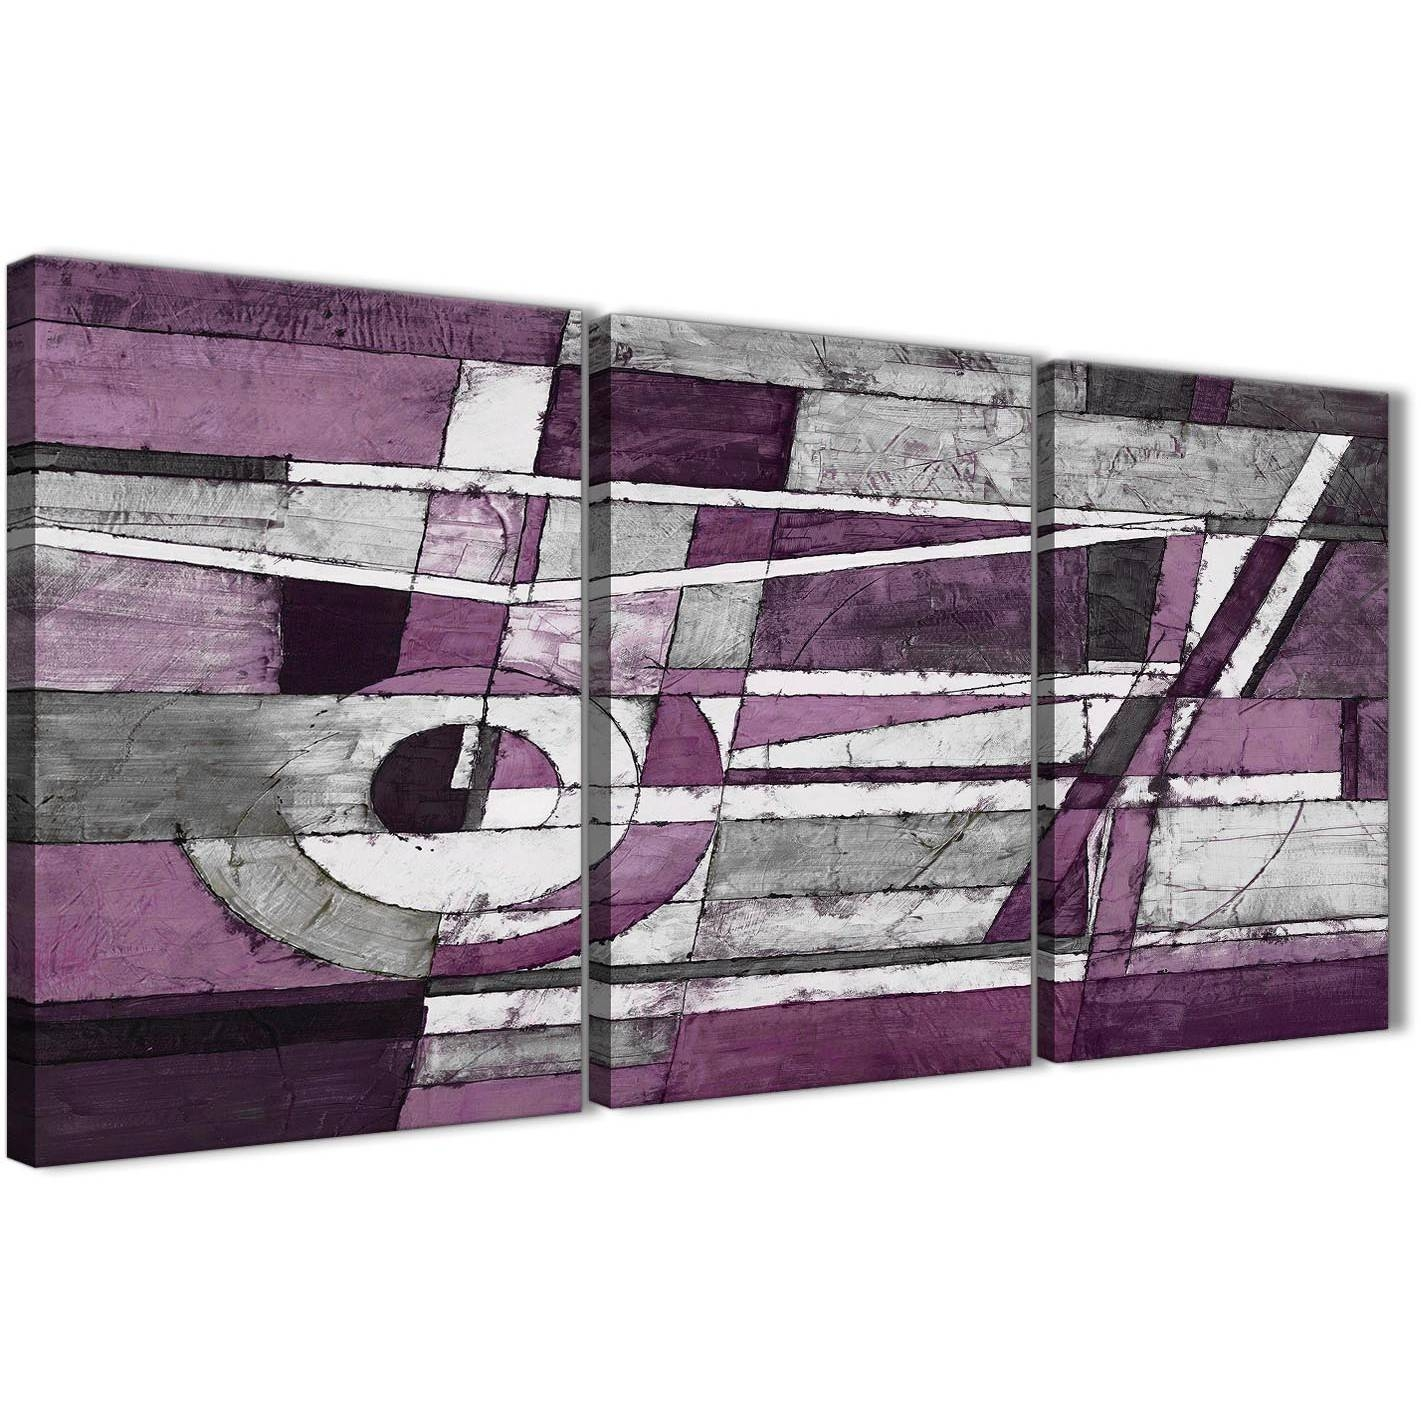 3 Panel Aubergine Grey White Painting Dining Room Canvas Wall Art Intended For 2017 Aubergine Wall Art (View 4 of 20)